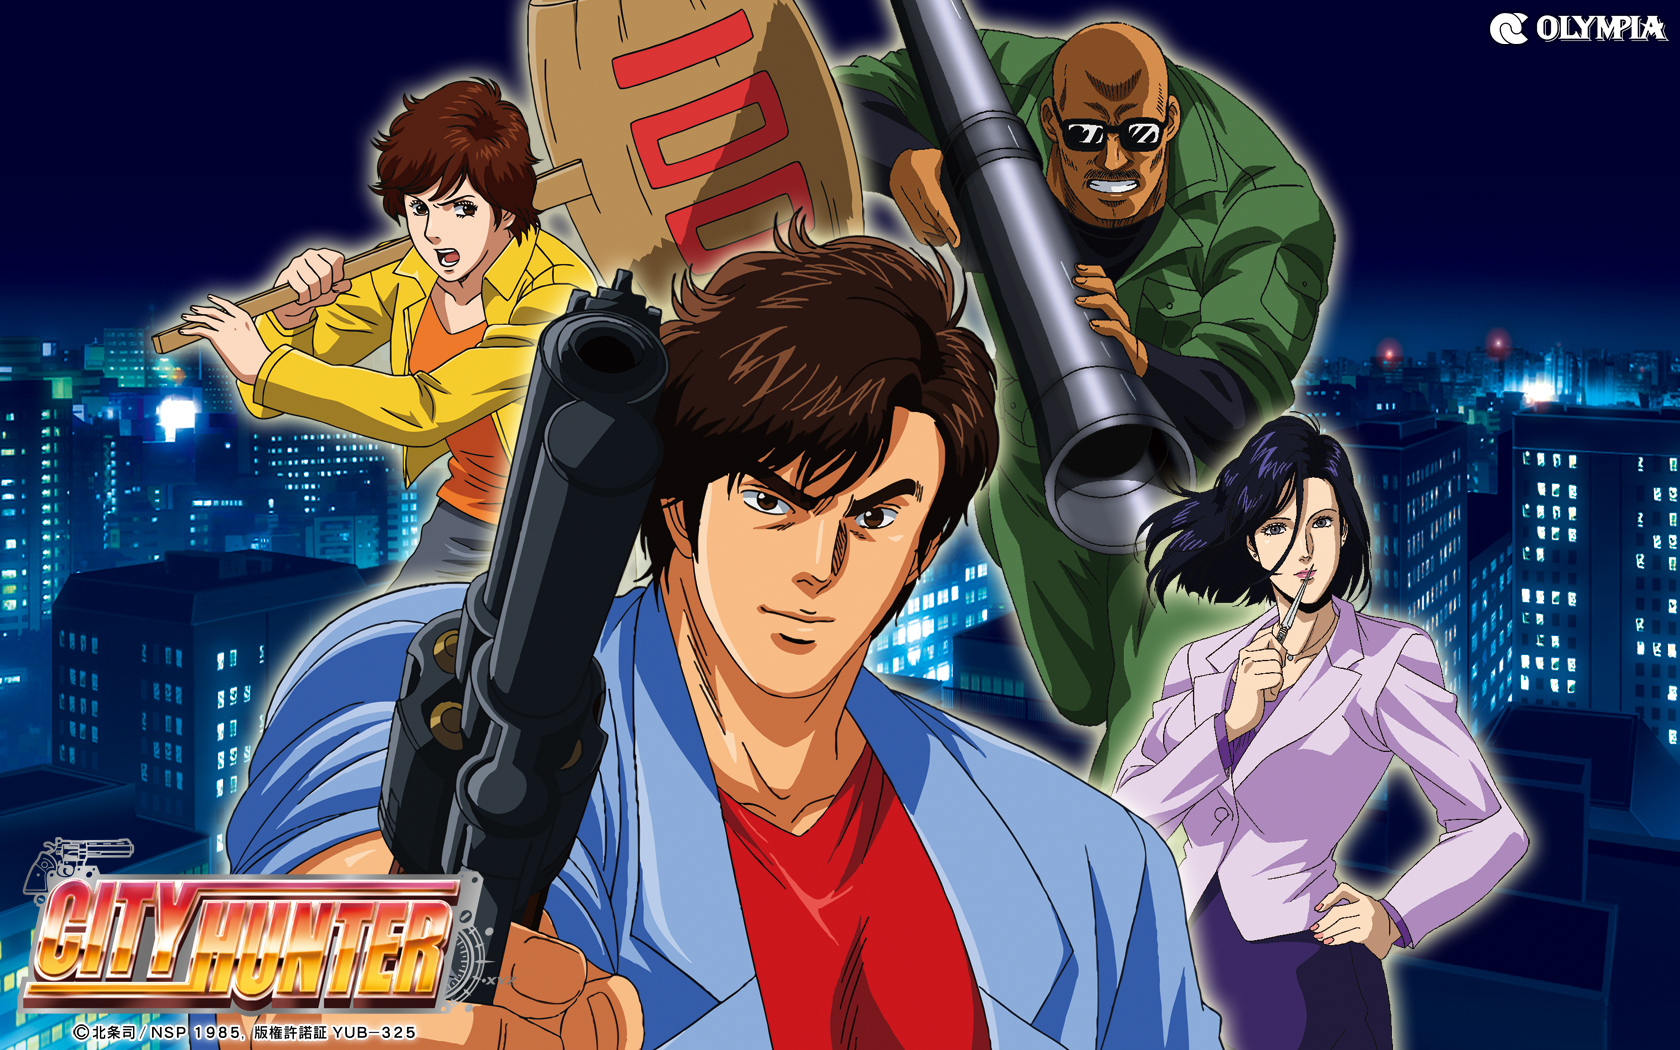 City hunter cartoonsexy wallpaper fucks photos